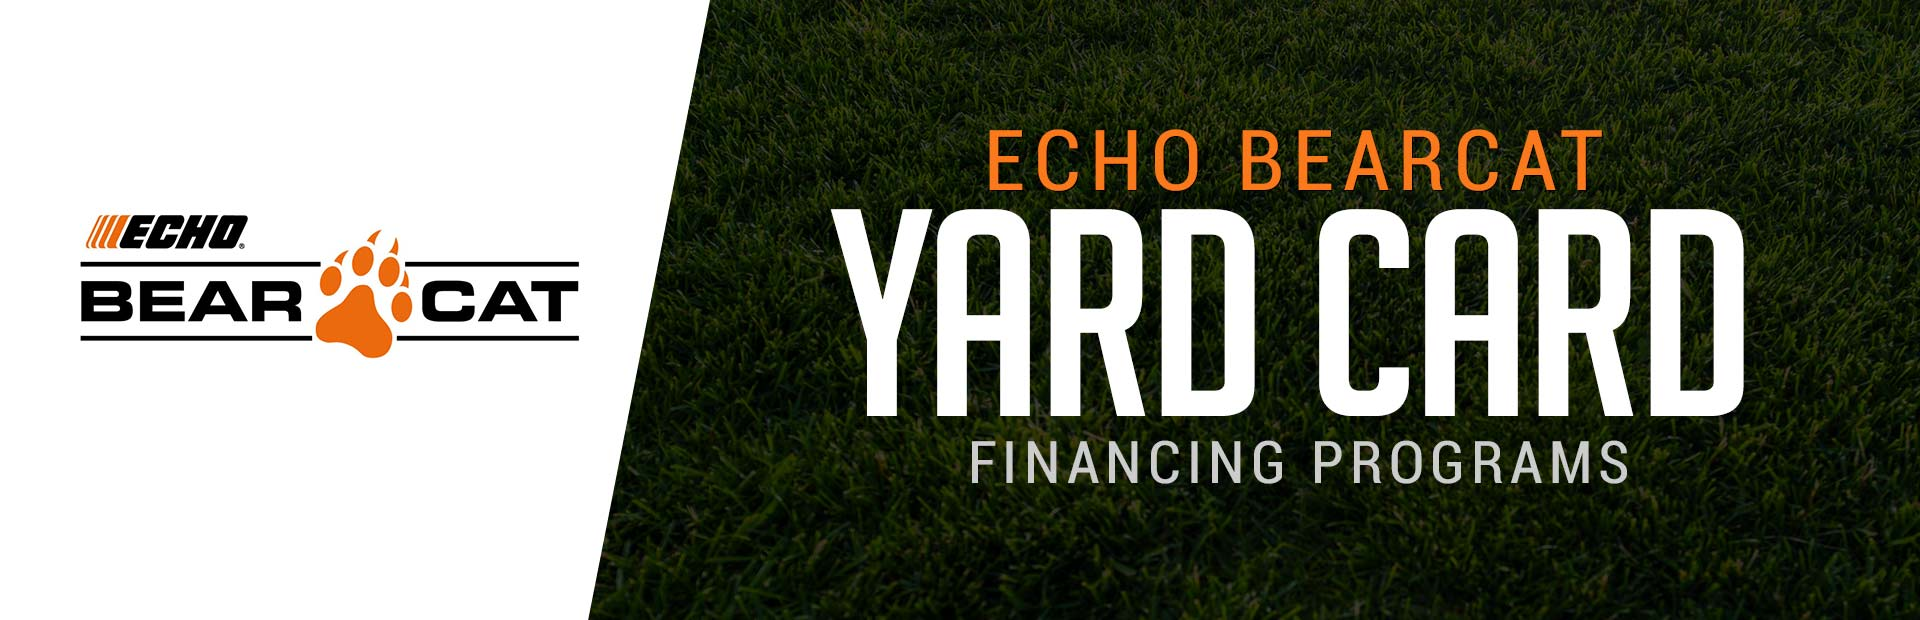 ECHO: ECHO Bearcat – Yard Card Financing Programs